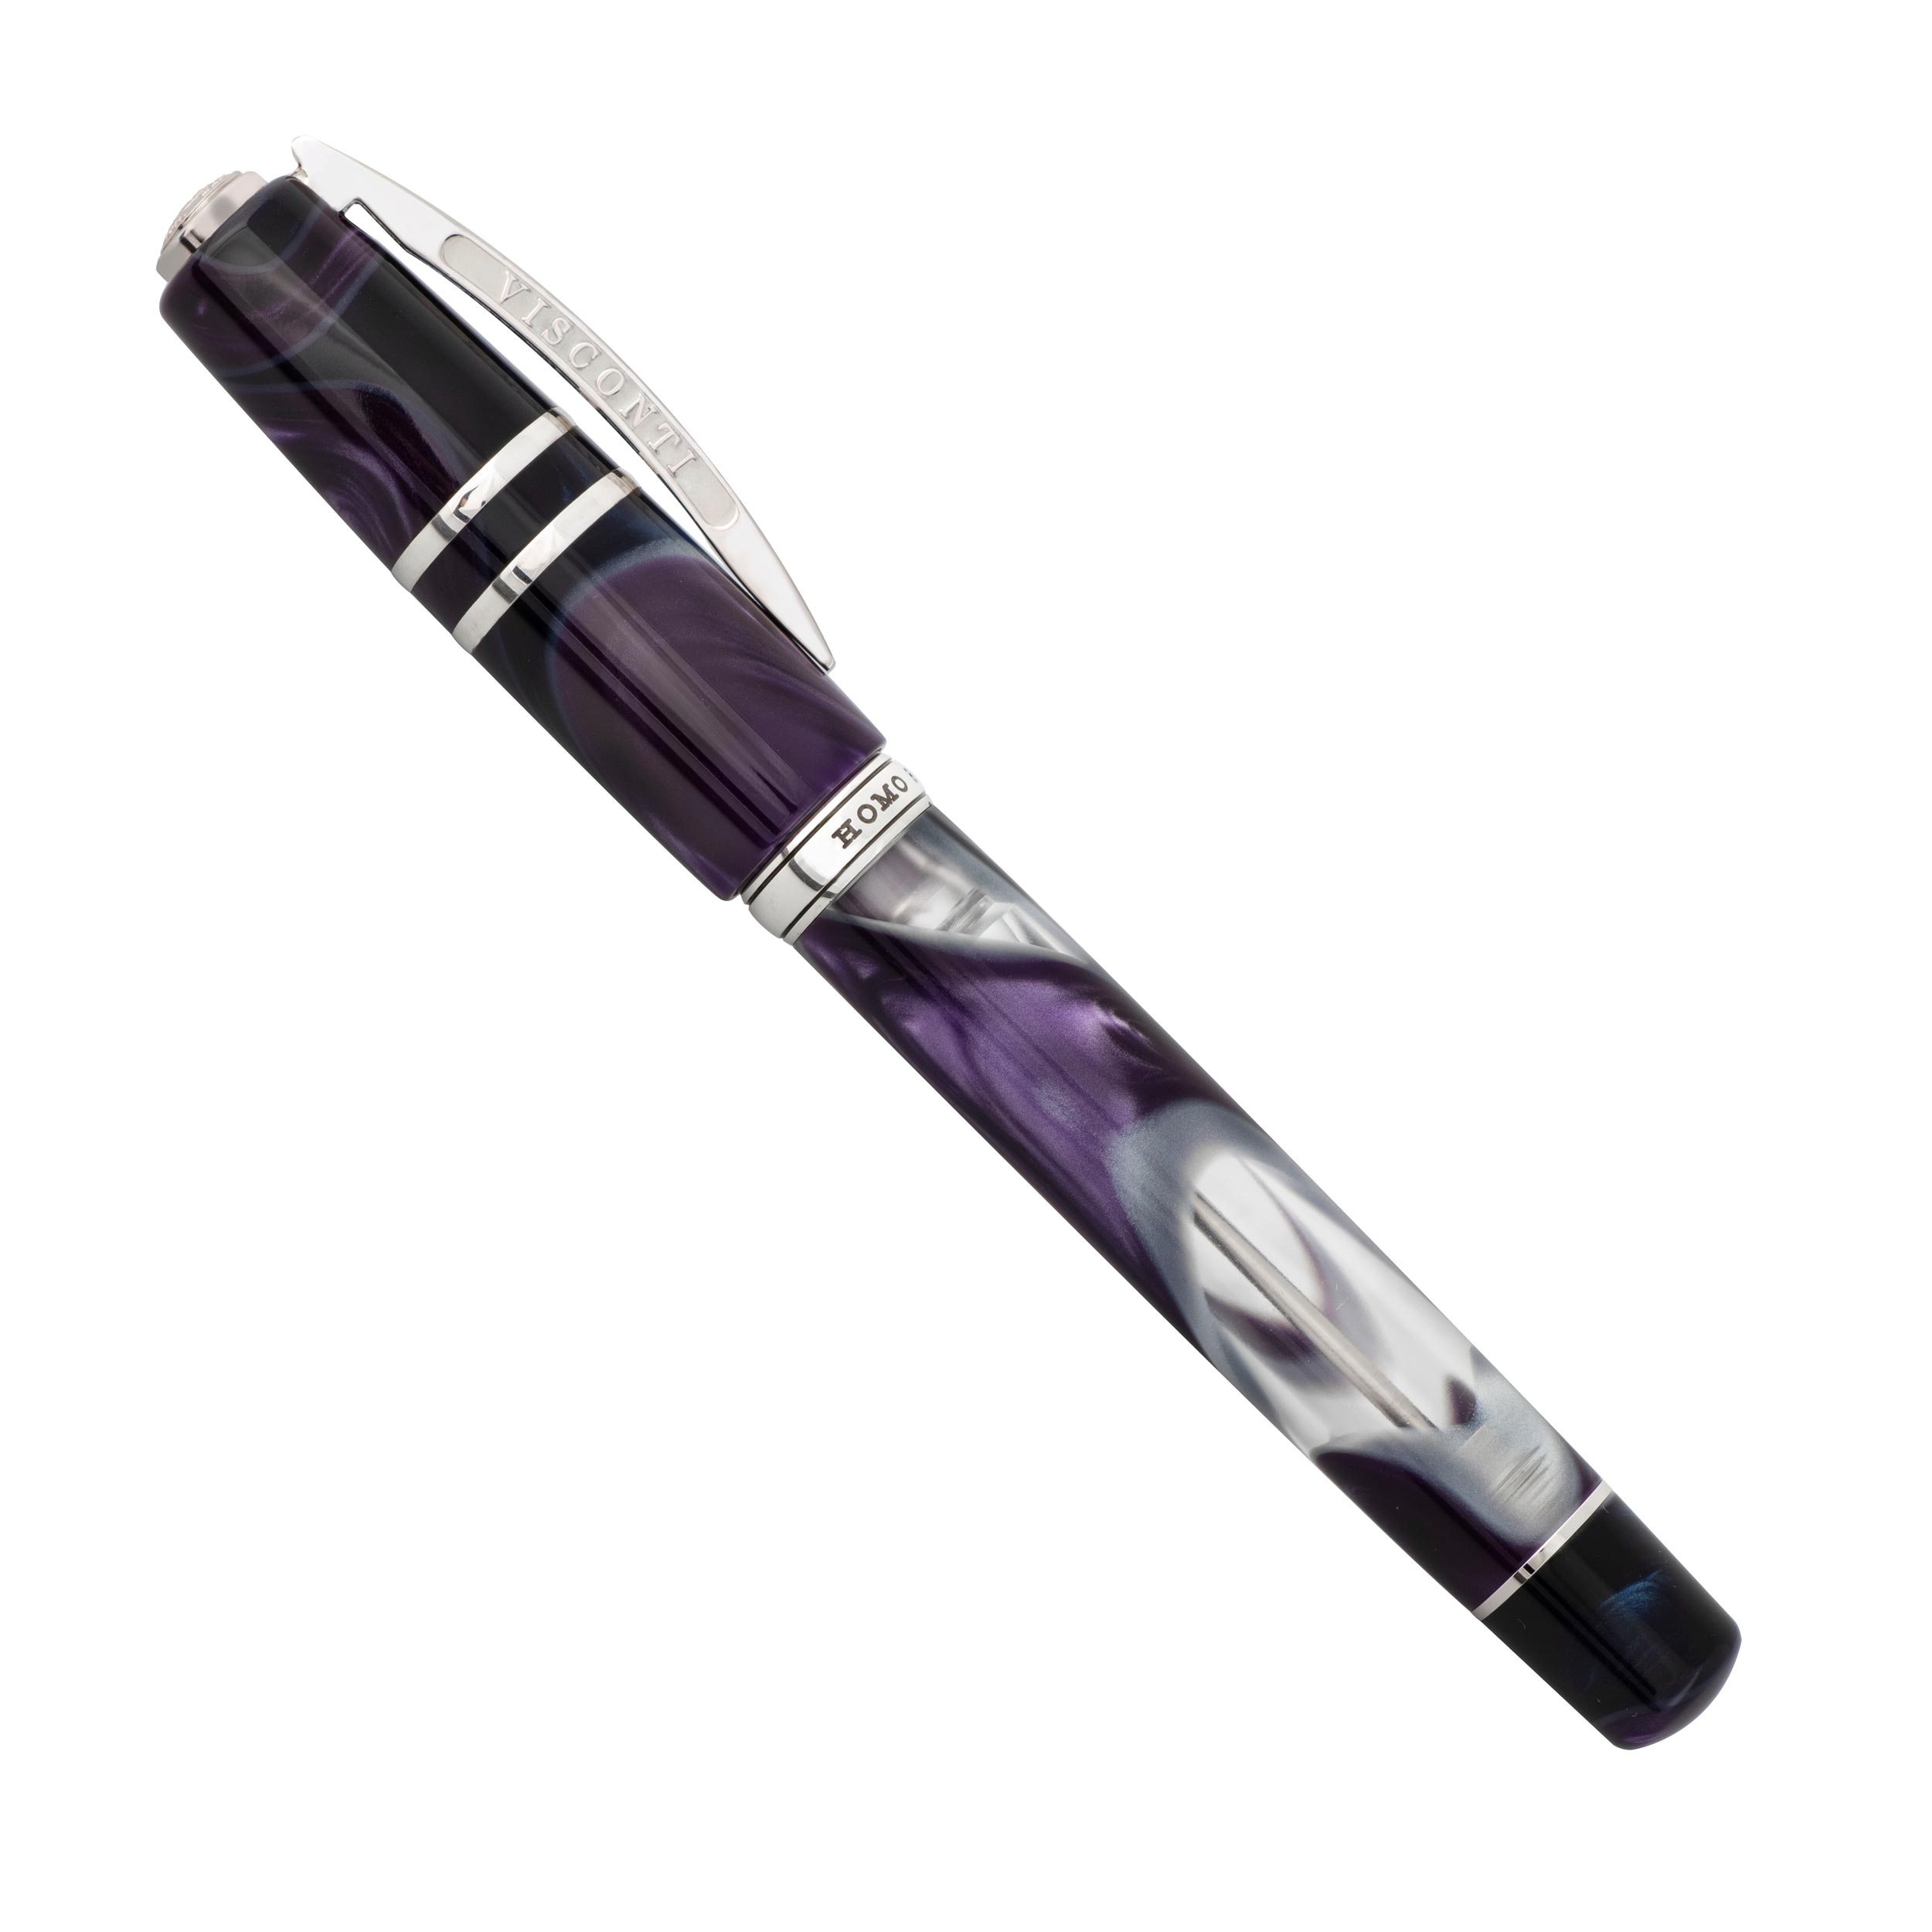 Visconti Homo Sapiens Midnight In Florence Fountain Pen